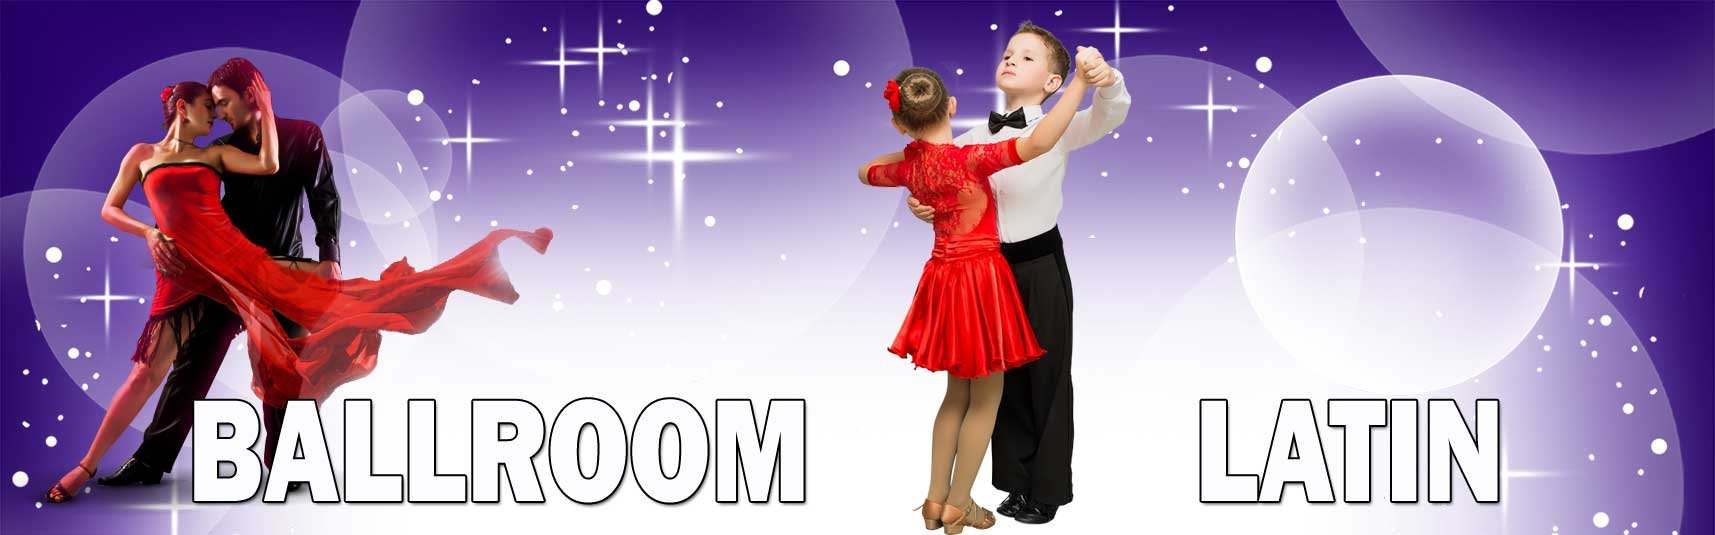 Starlight dancewear range of ballroom & latin shoes for professionals & beginners.